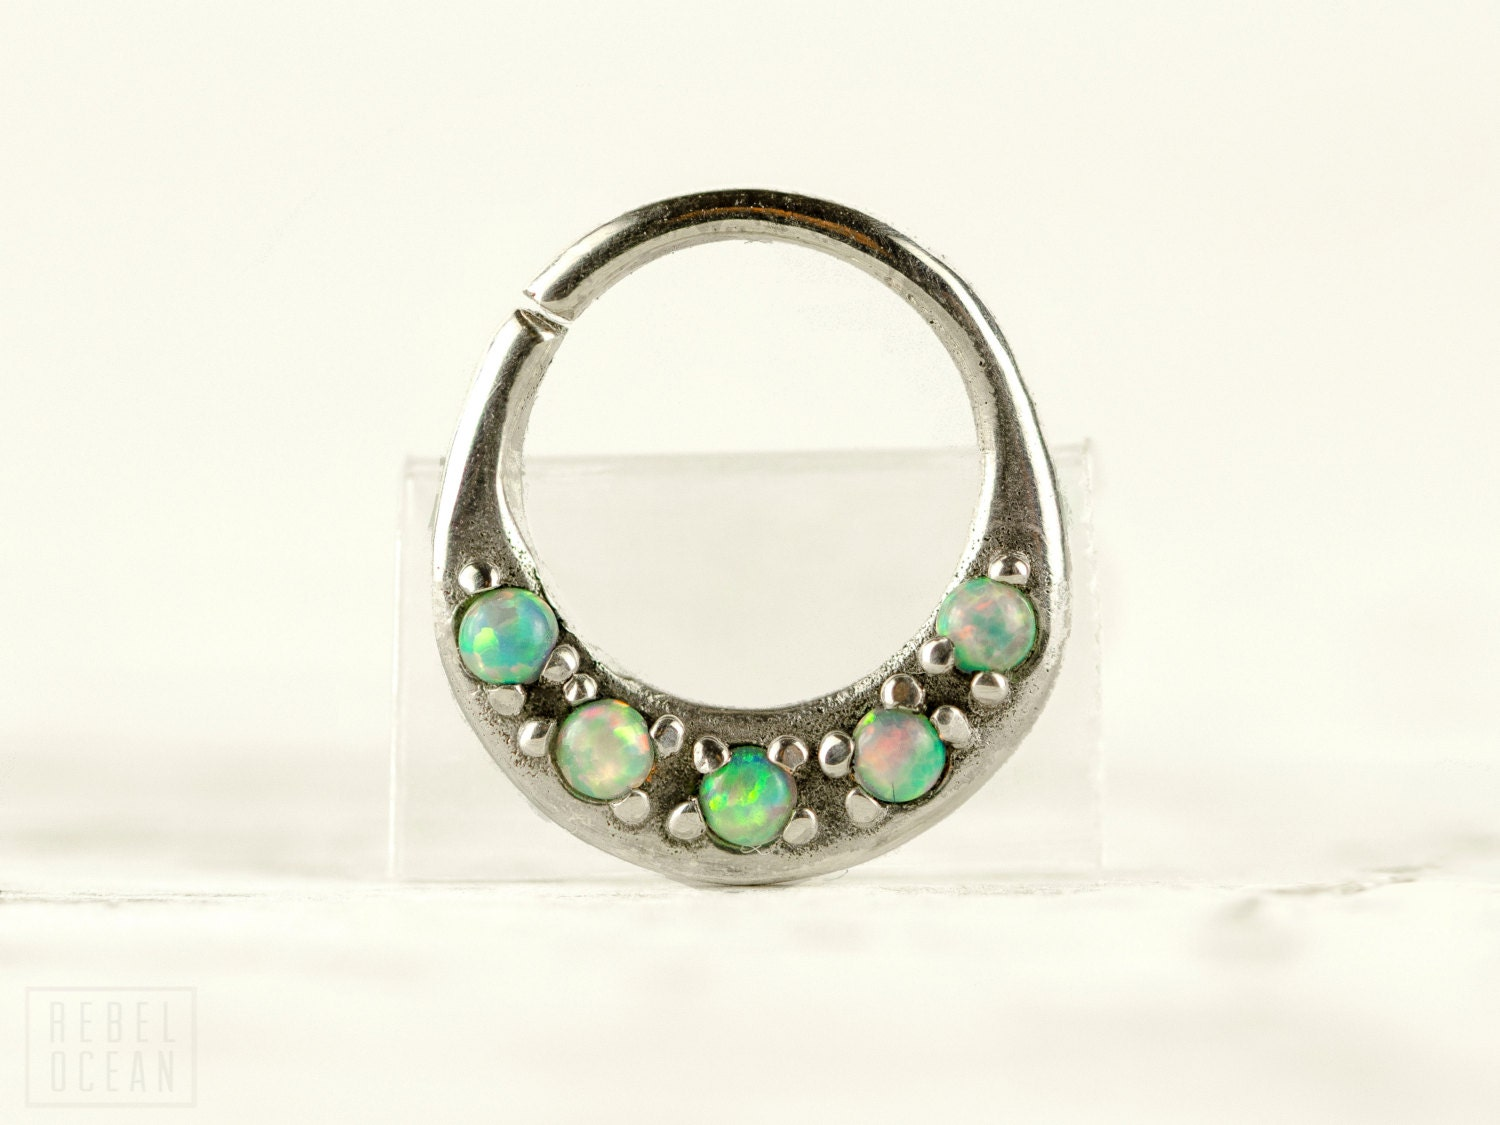 septum ring nose ring septum jewelry light turquoise opal